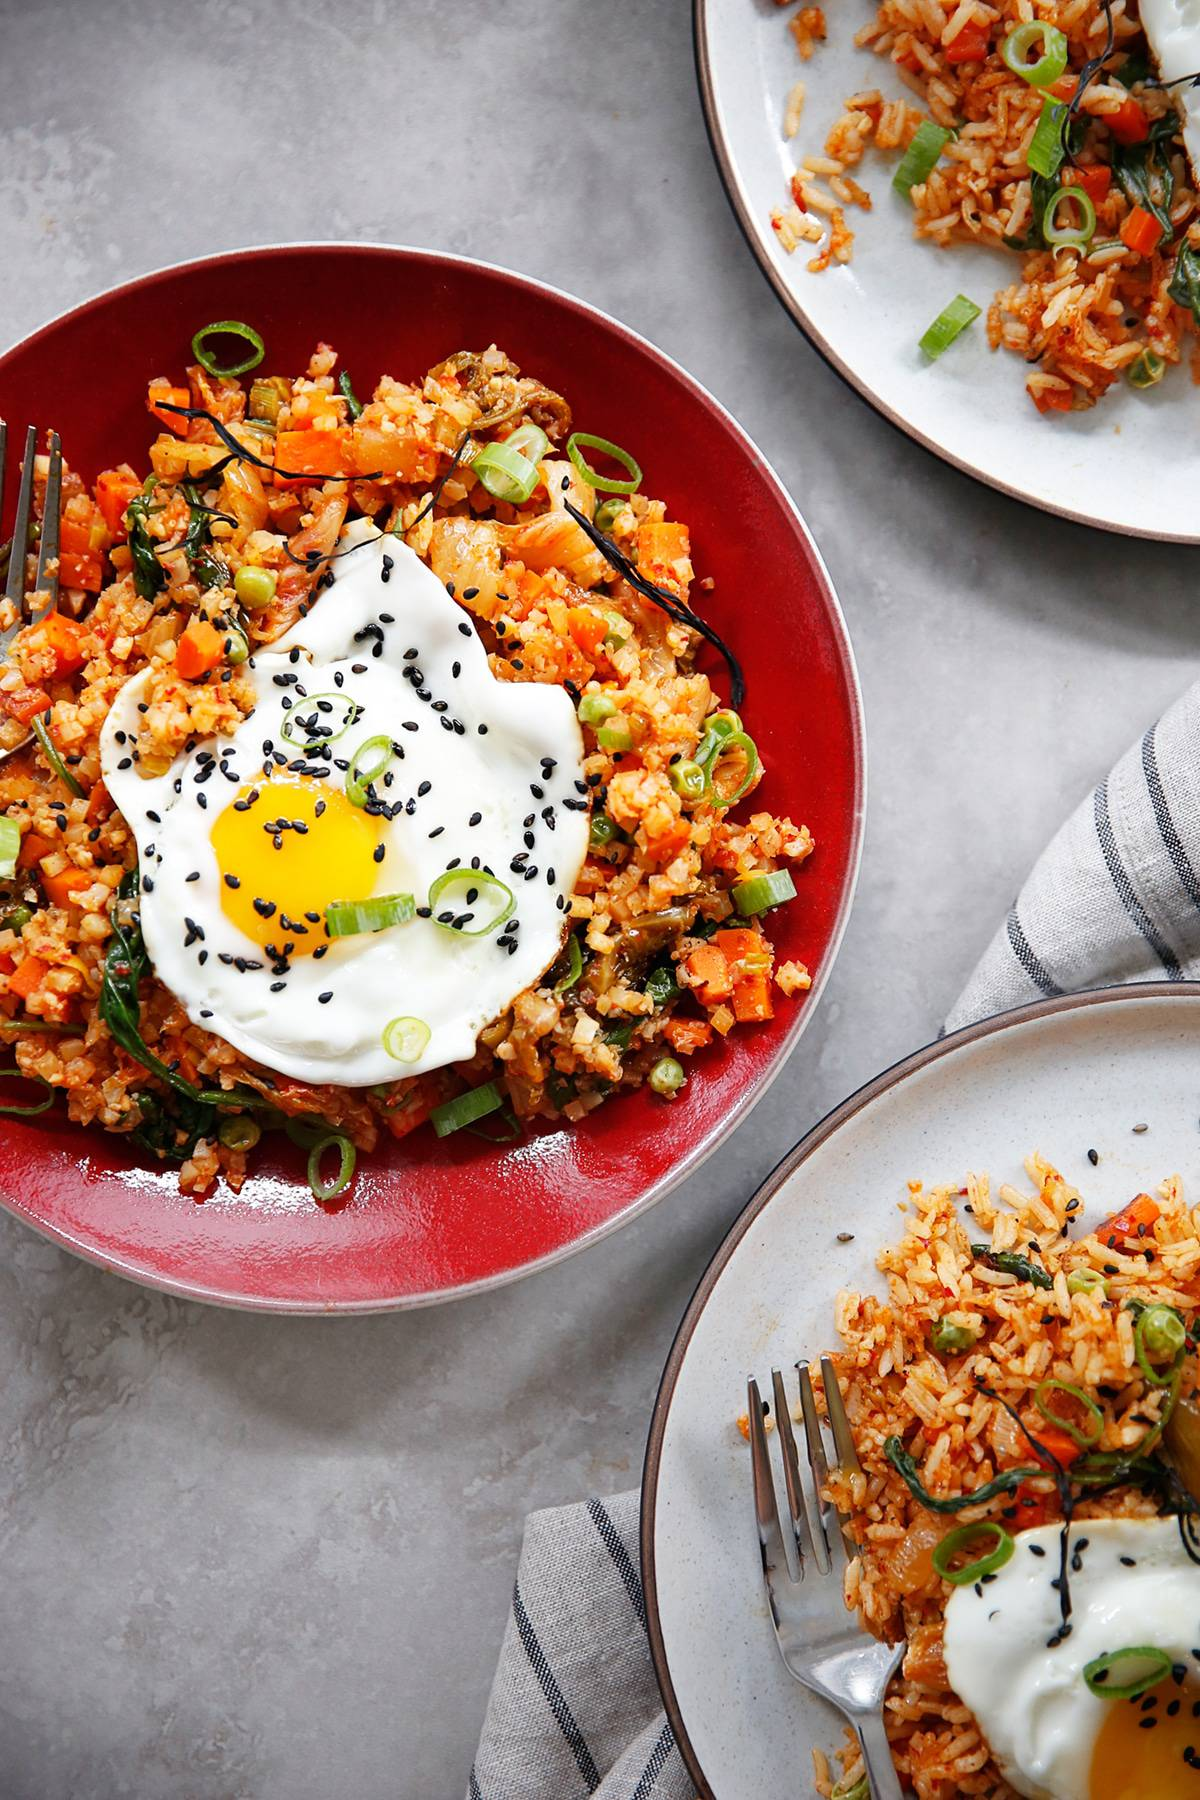 how do you make kimchi fried rice?